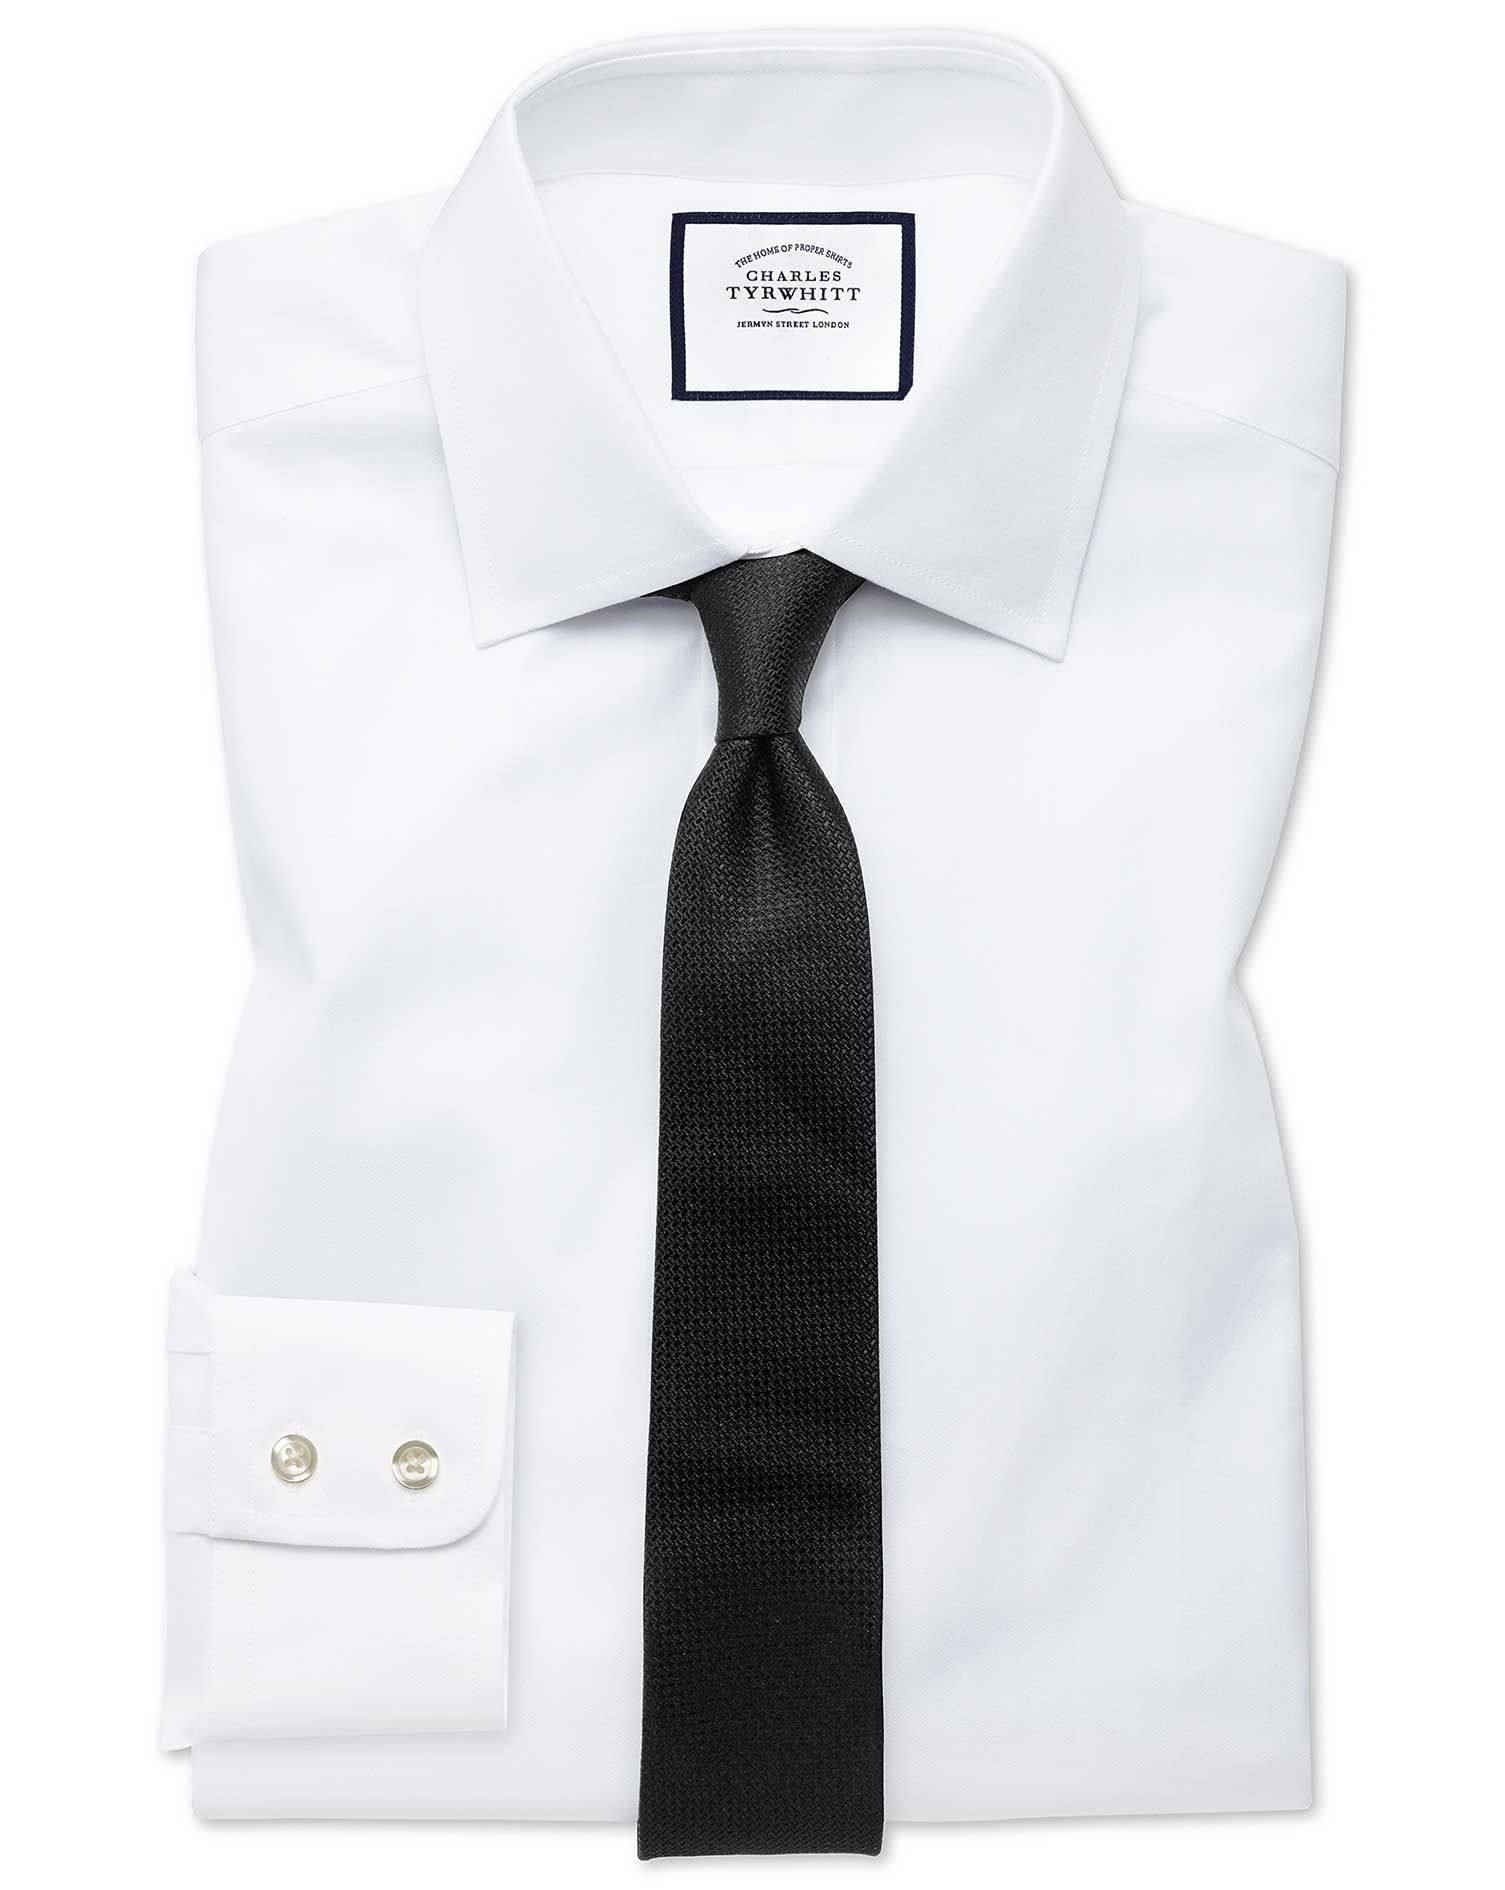 Extra Slim Fit White Fine Herringbone Cotton Formal Shirt Double Cuff Size 15.5/32 by Charles Tyrwhi